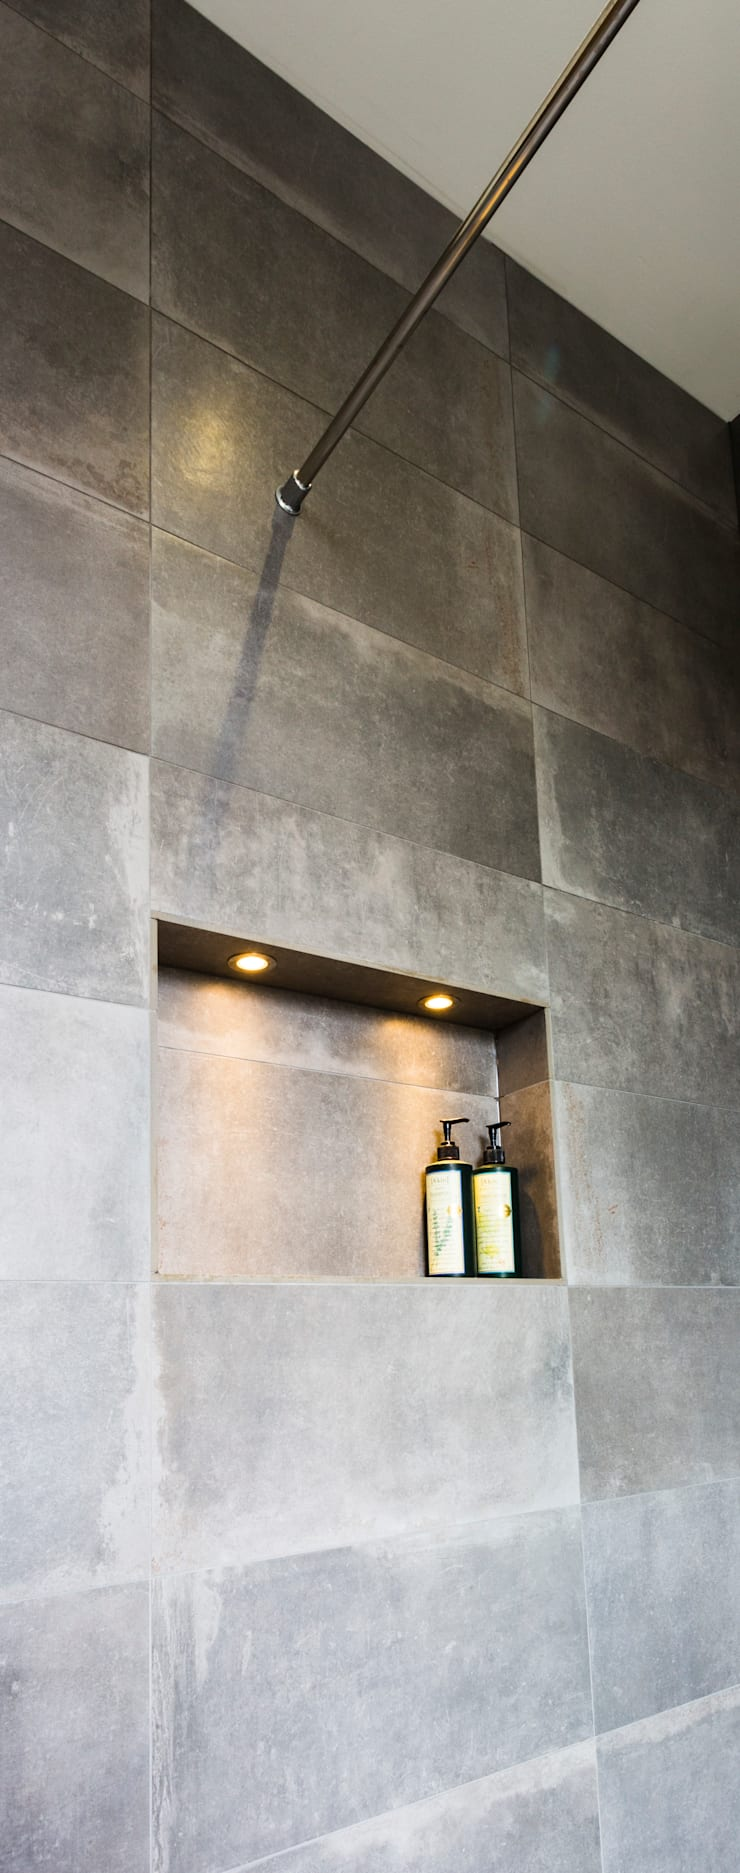 Wet room shelving:  Walls by Affleck Property Services